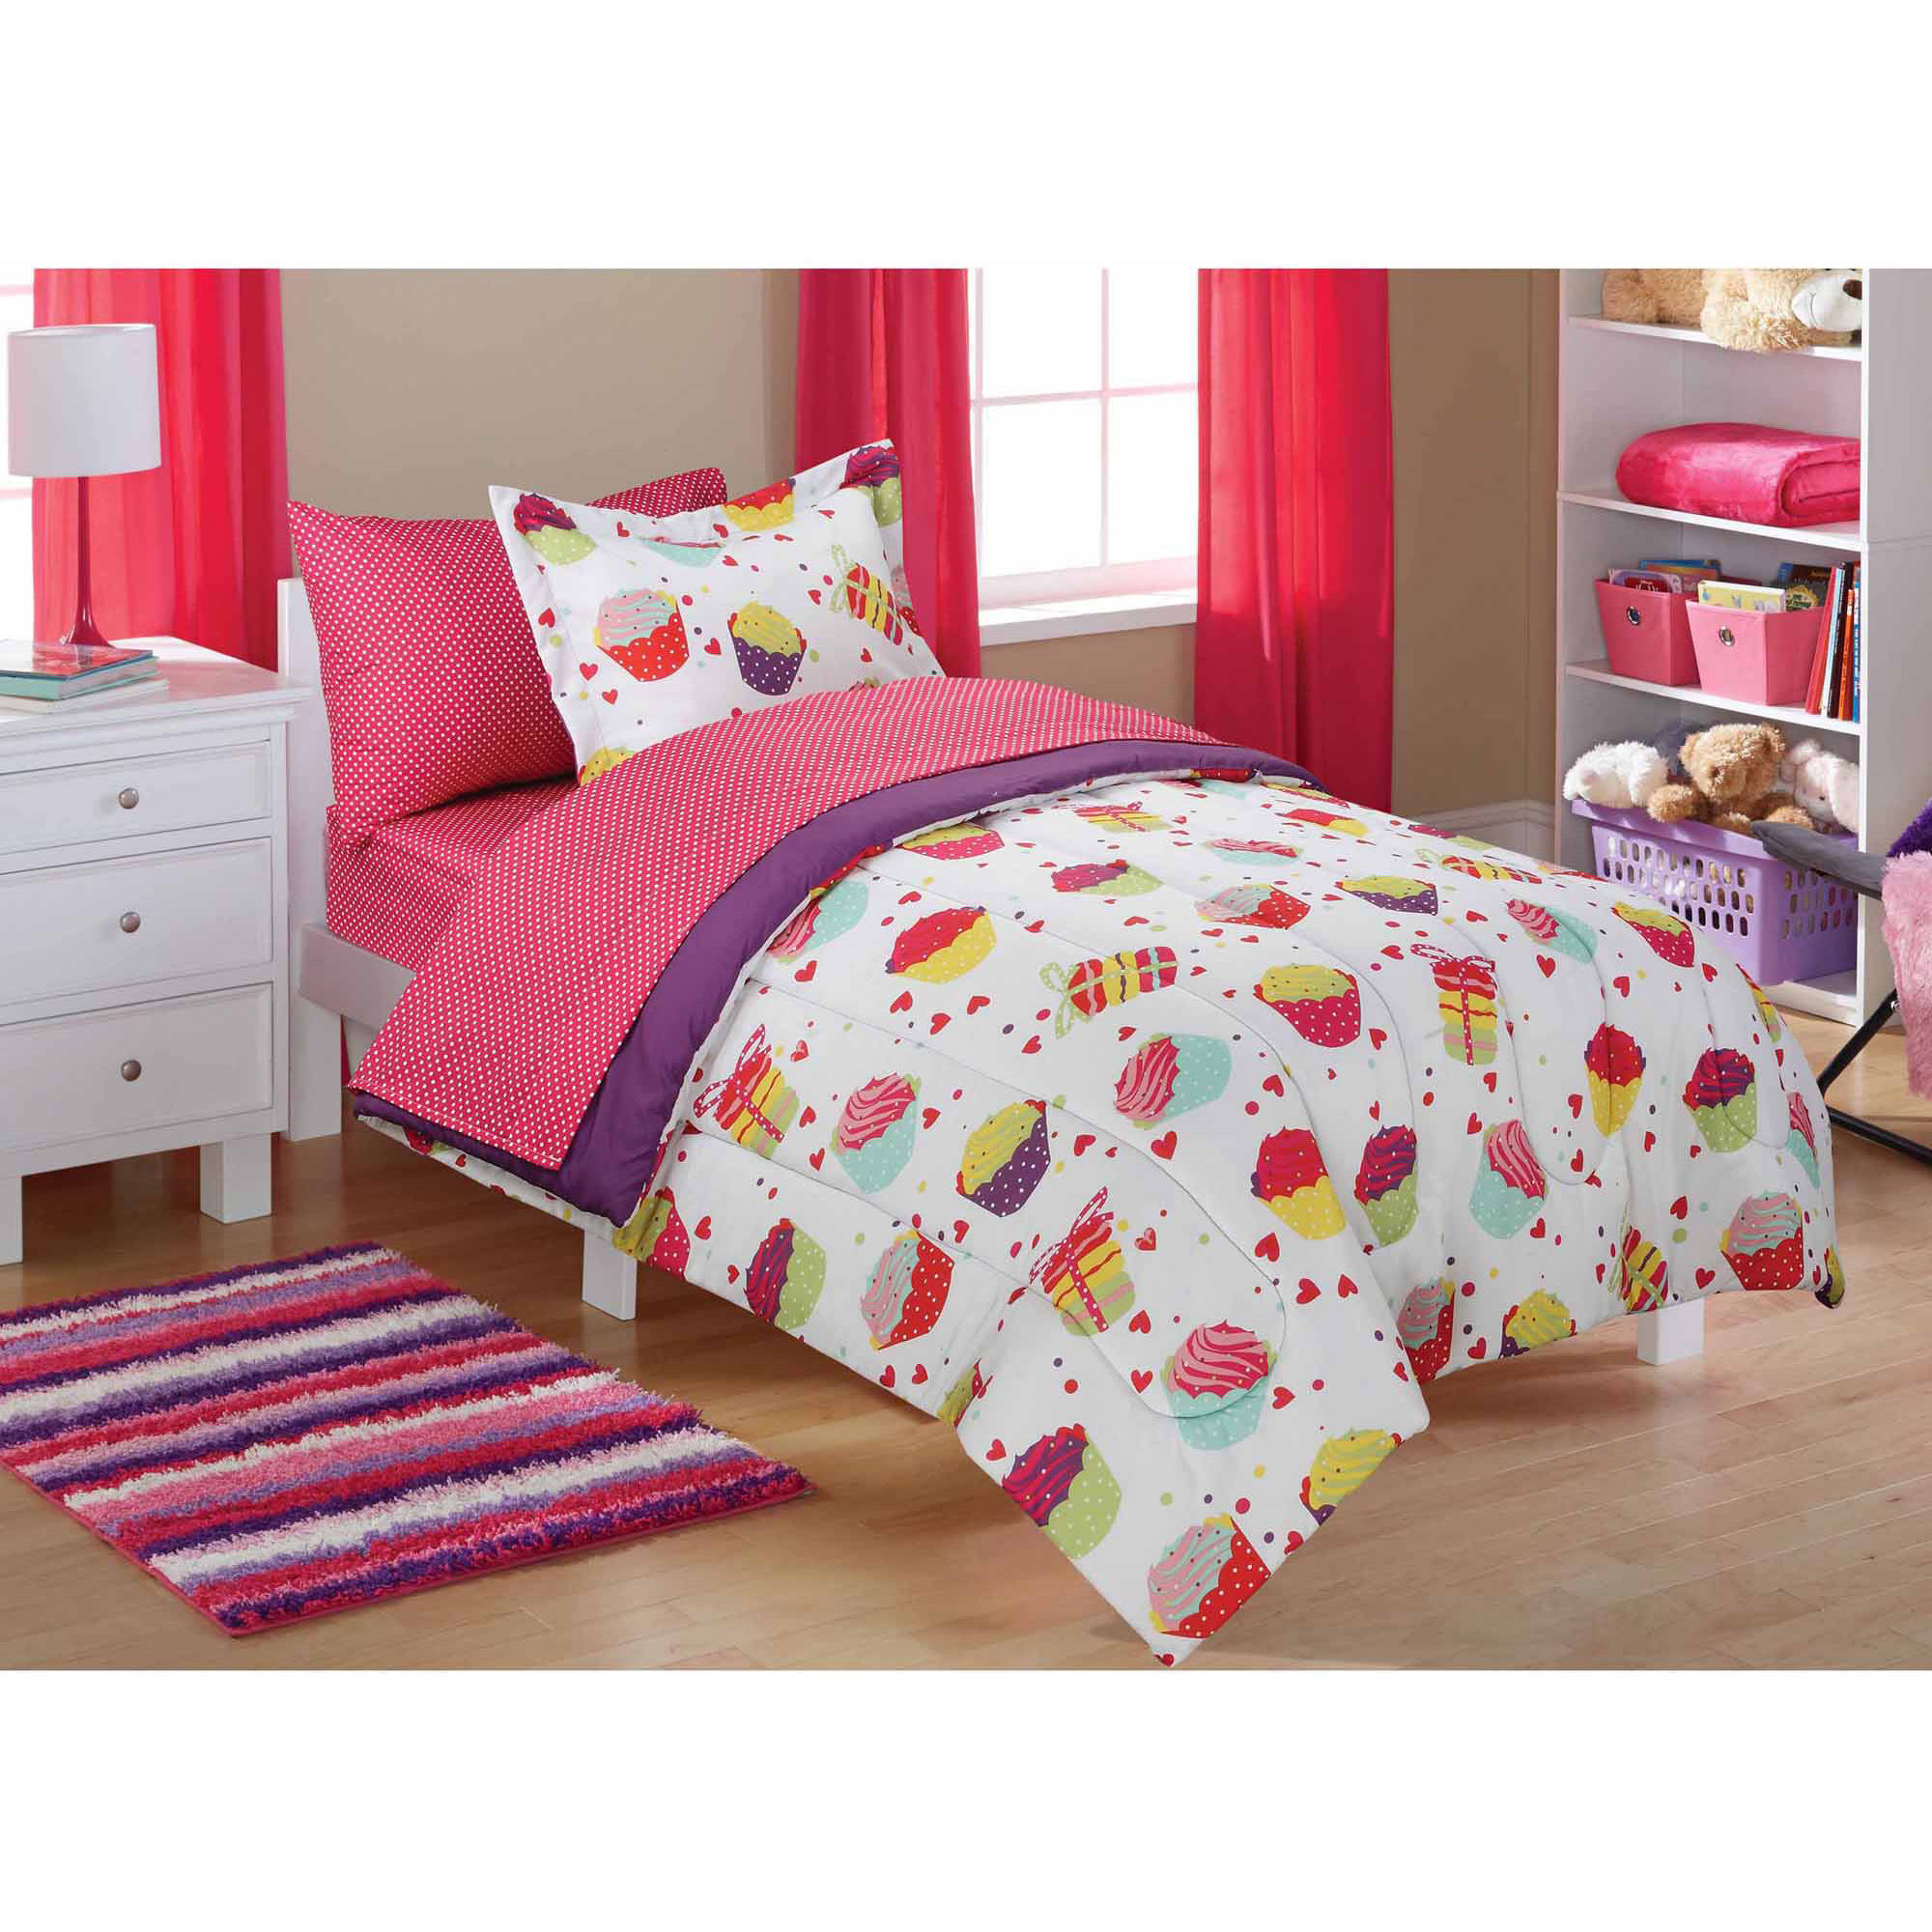 Mainstays Kidsu0027 Coordinated Bed In A Bag, Pink Horsey   Walmart.com